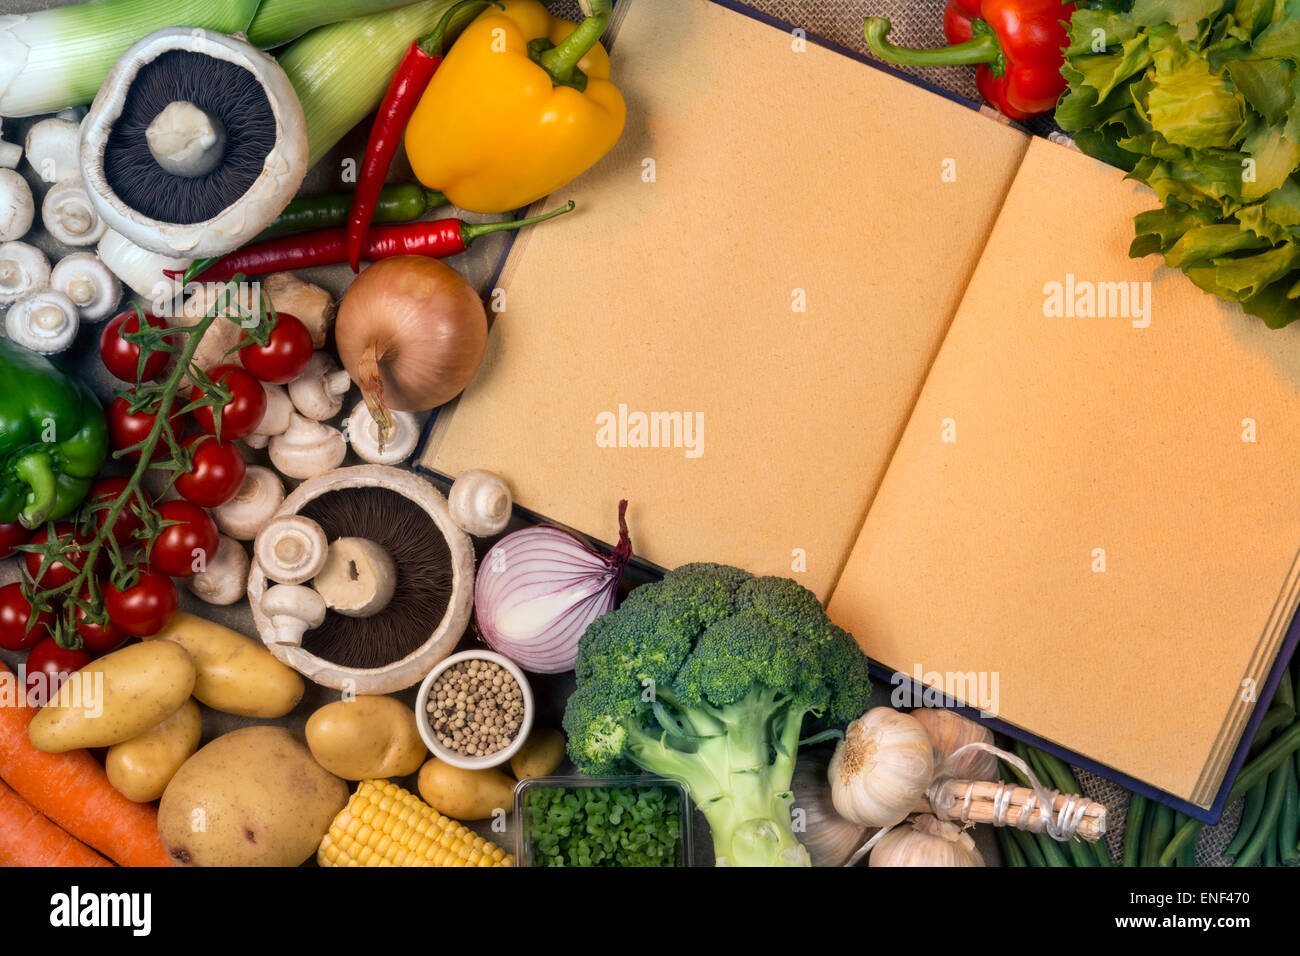 Fresh vegetables and recipe book with blank pages - Space for your Text - Stock Image